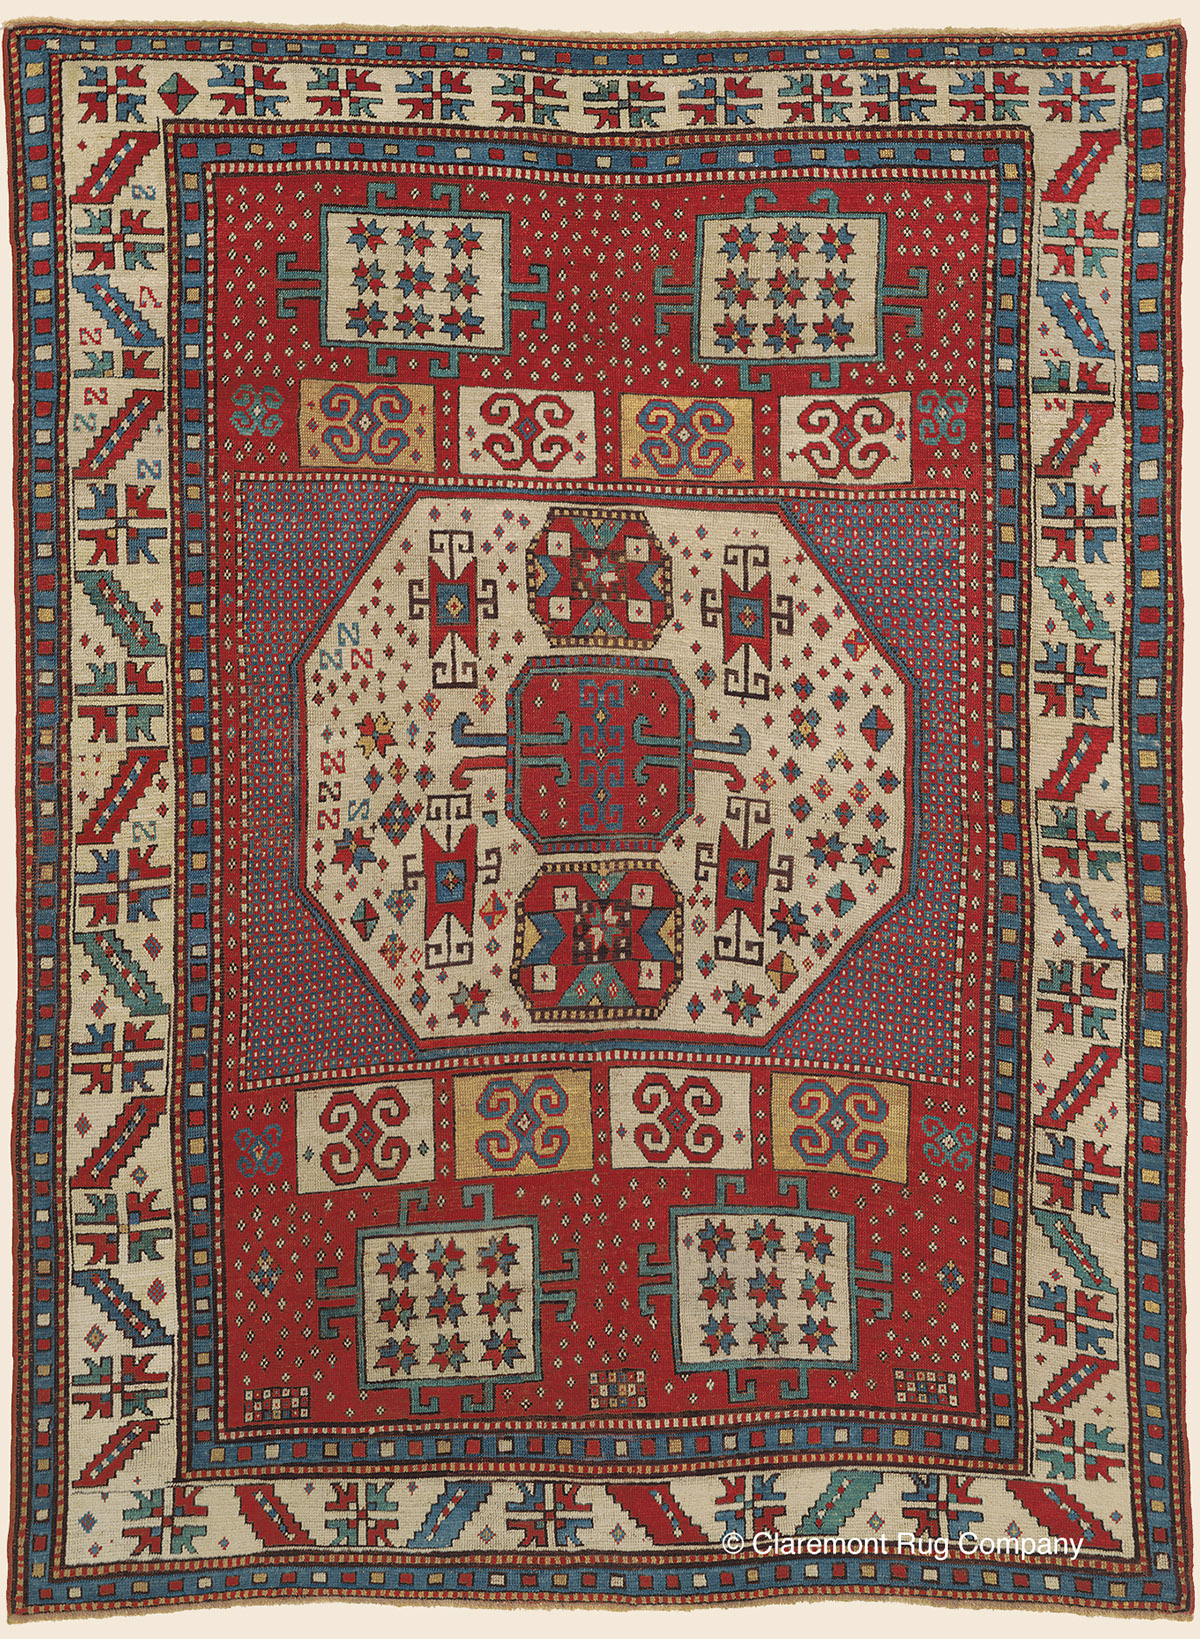 19th century Caucasian Karachov Kazak with allover tribal motifs on a crimson red reserve